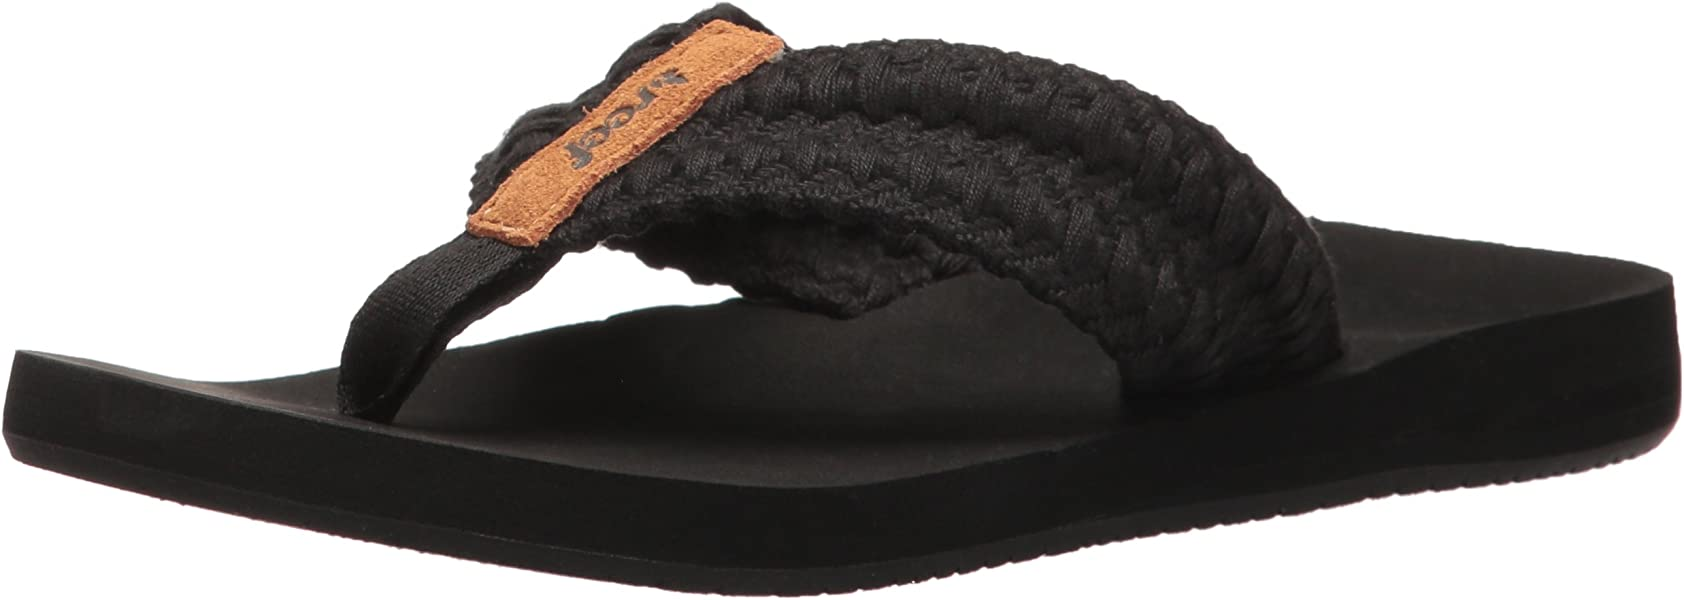 0e82d880a Reef Women s Cushion Threads Sandal